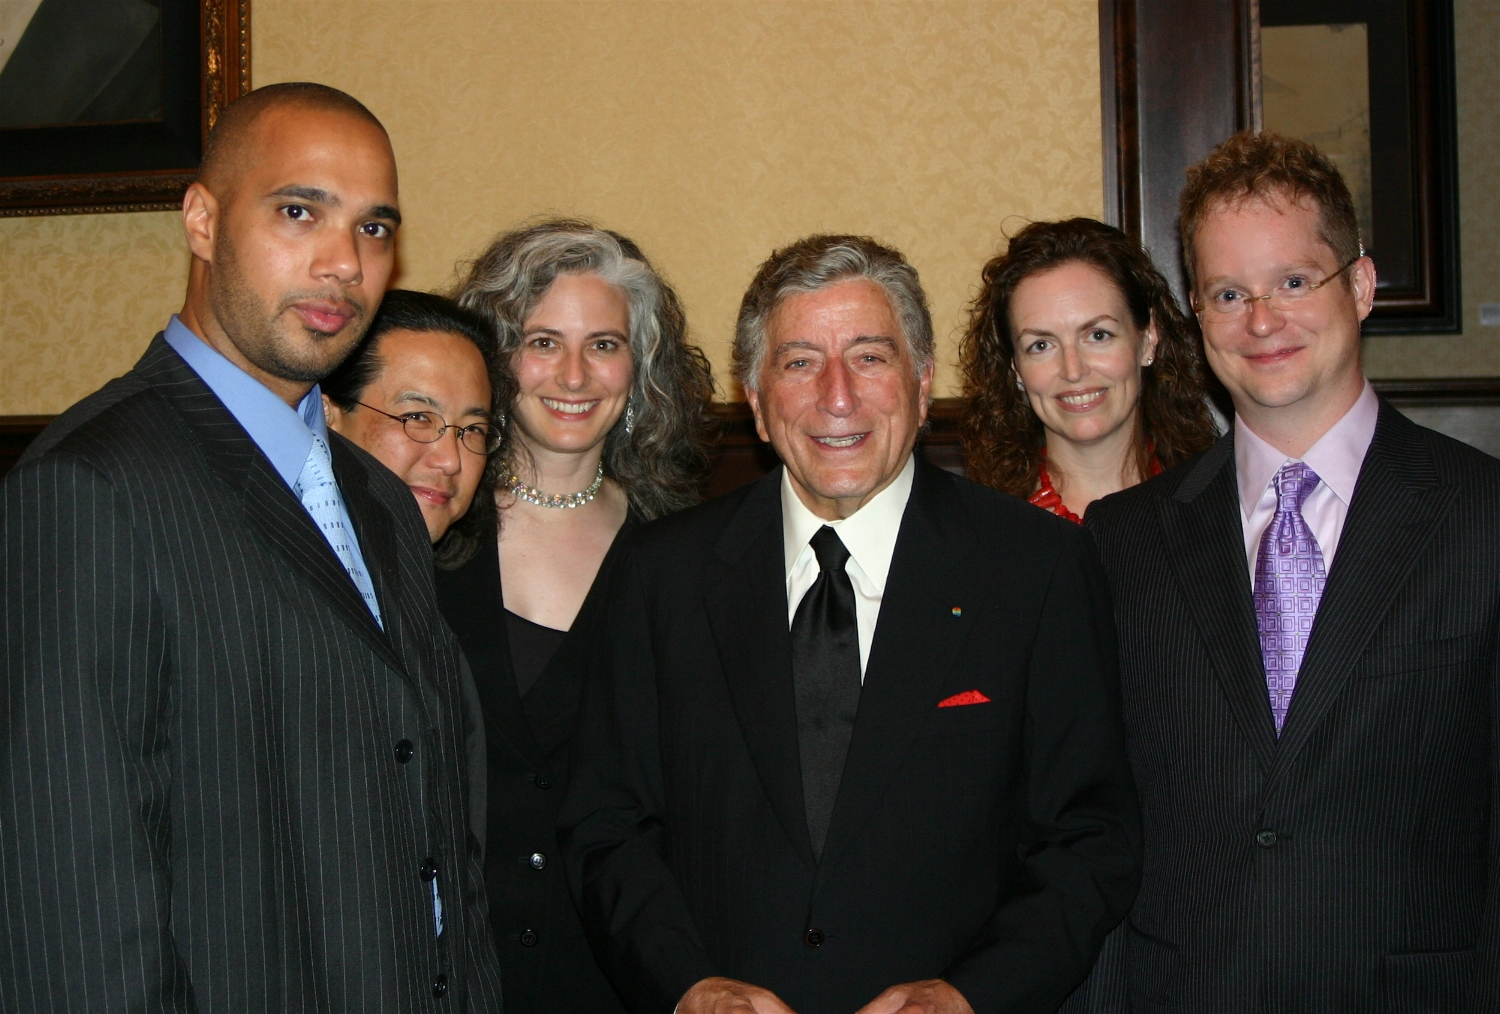 Tony Bennett paid a visit to his opening act, the Chuck Lazarus Quartet. Bassist Jeffrey Bailey, drummer Craig Hara, pianist Mary Louise Knutson, Tony Bennett, Lazarus' manager Mele Willis, and trumpeter Chuck Lazarus.